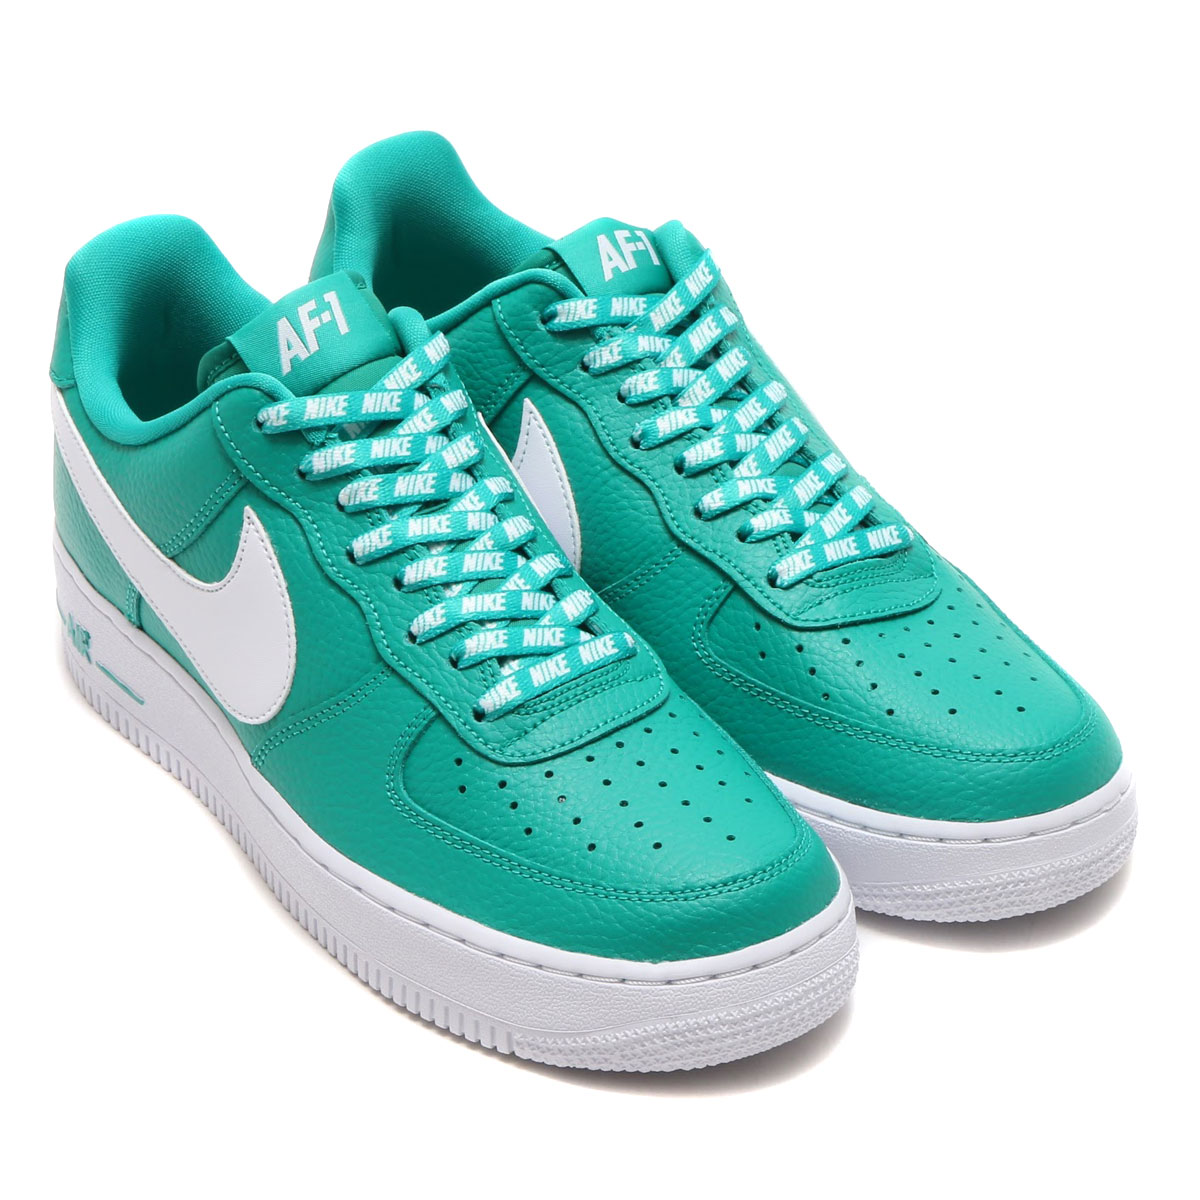 df7fdbf40e ... with a coat becomes the inspiration to realize one's dream. The success  of the longed-for player becomes one's motivation. The new air force 1 LOW  NBA ...